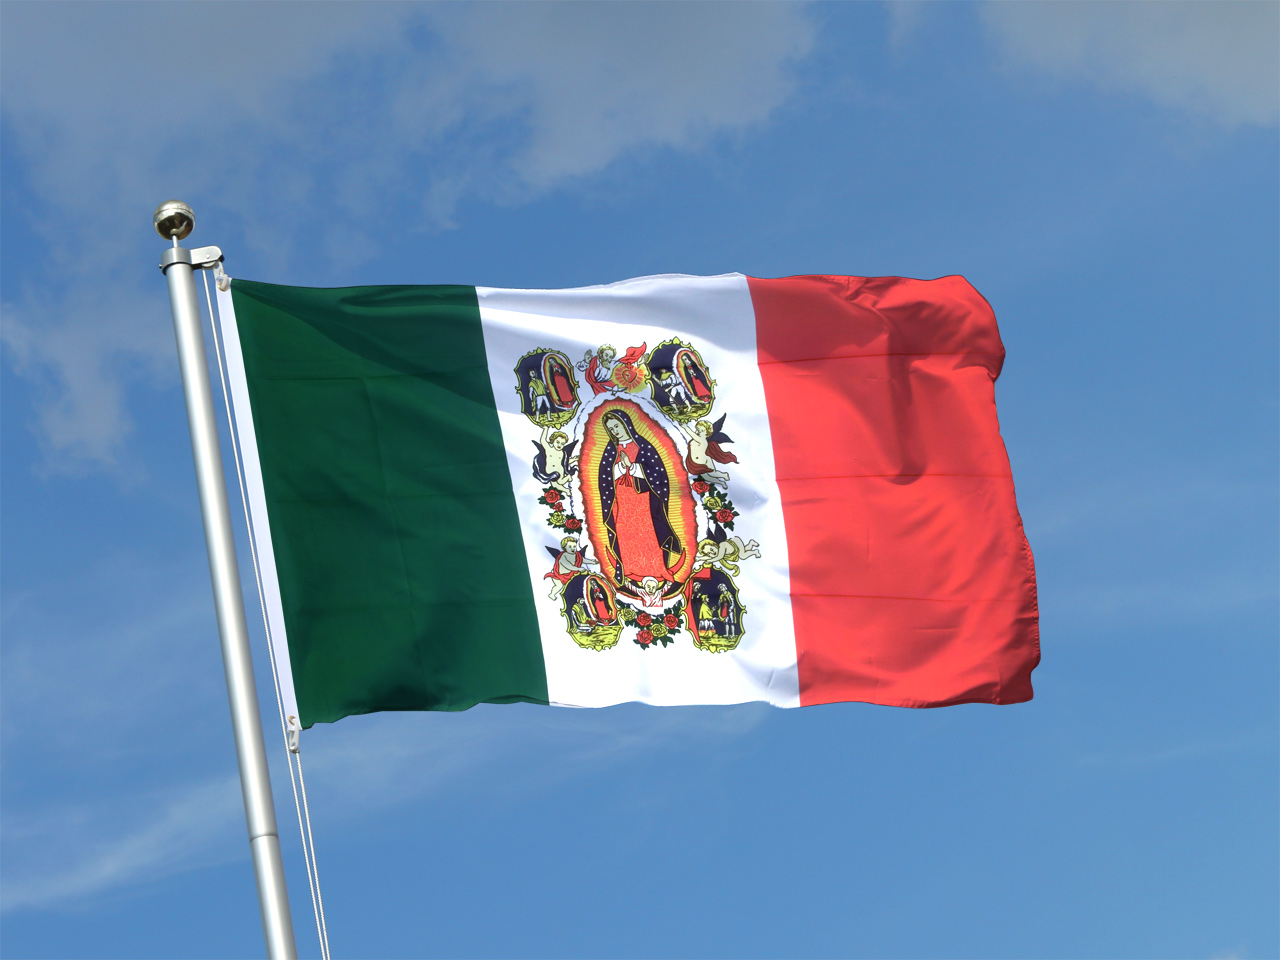 Mexico With Lady Of Guadalupe 3x5 Ft Flag 90x150 Cm